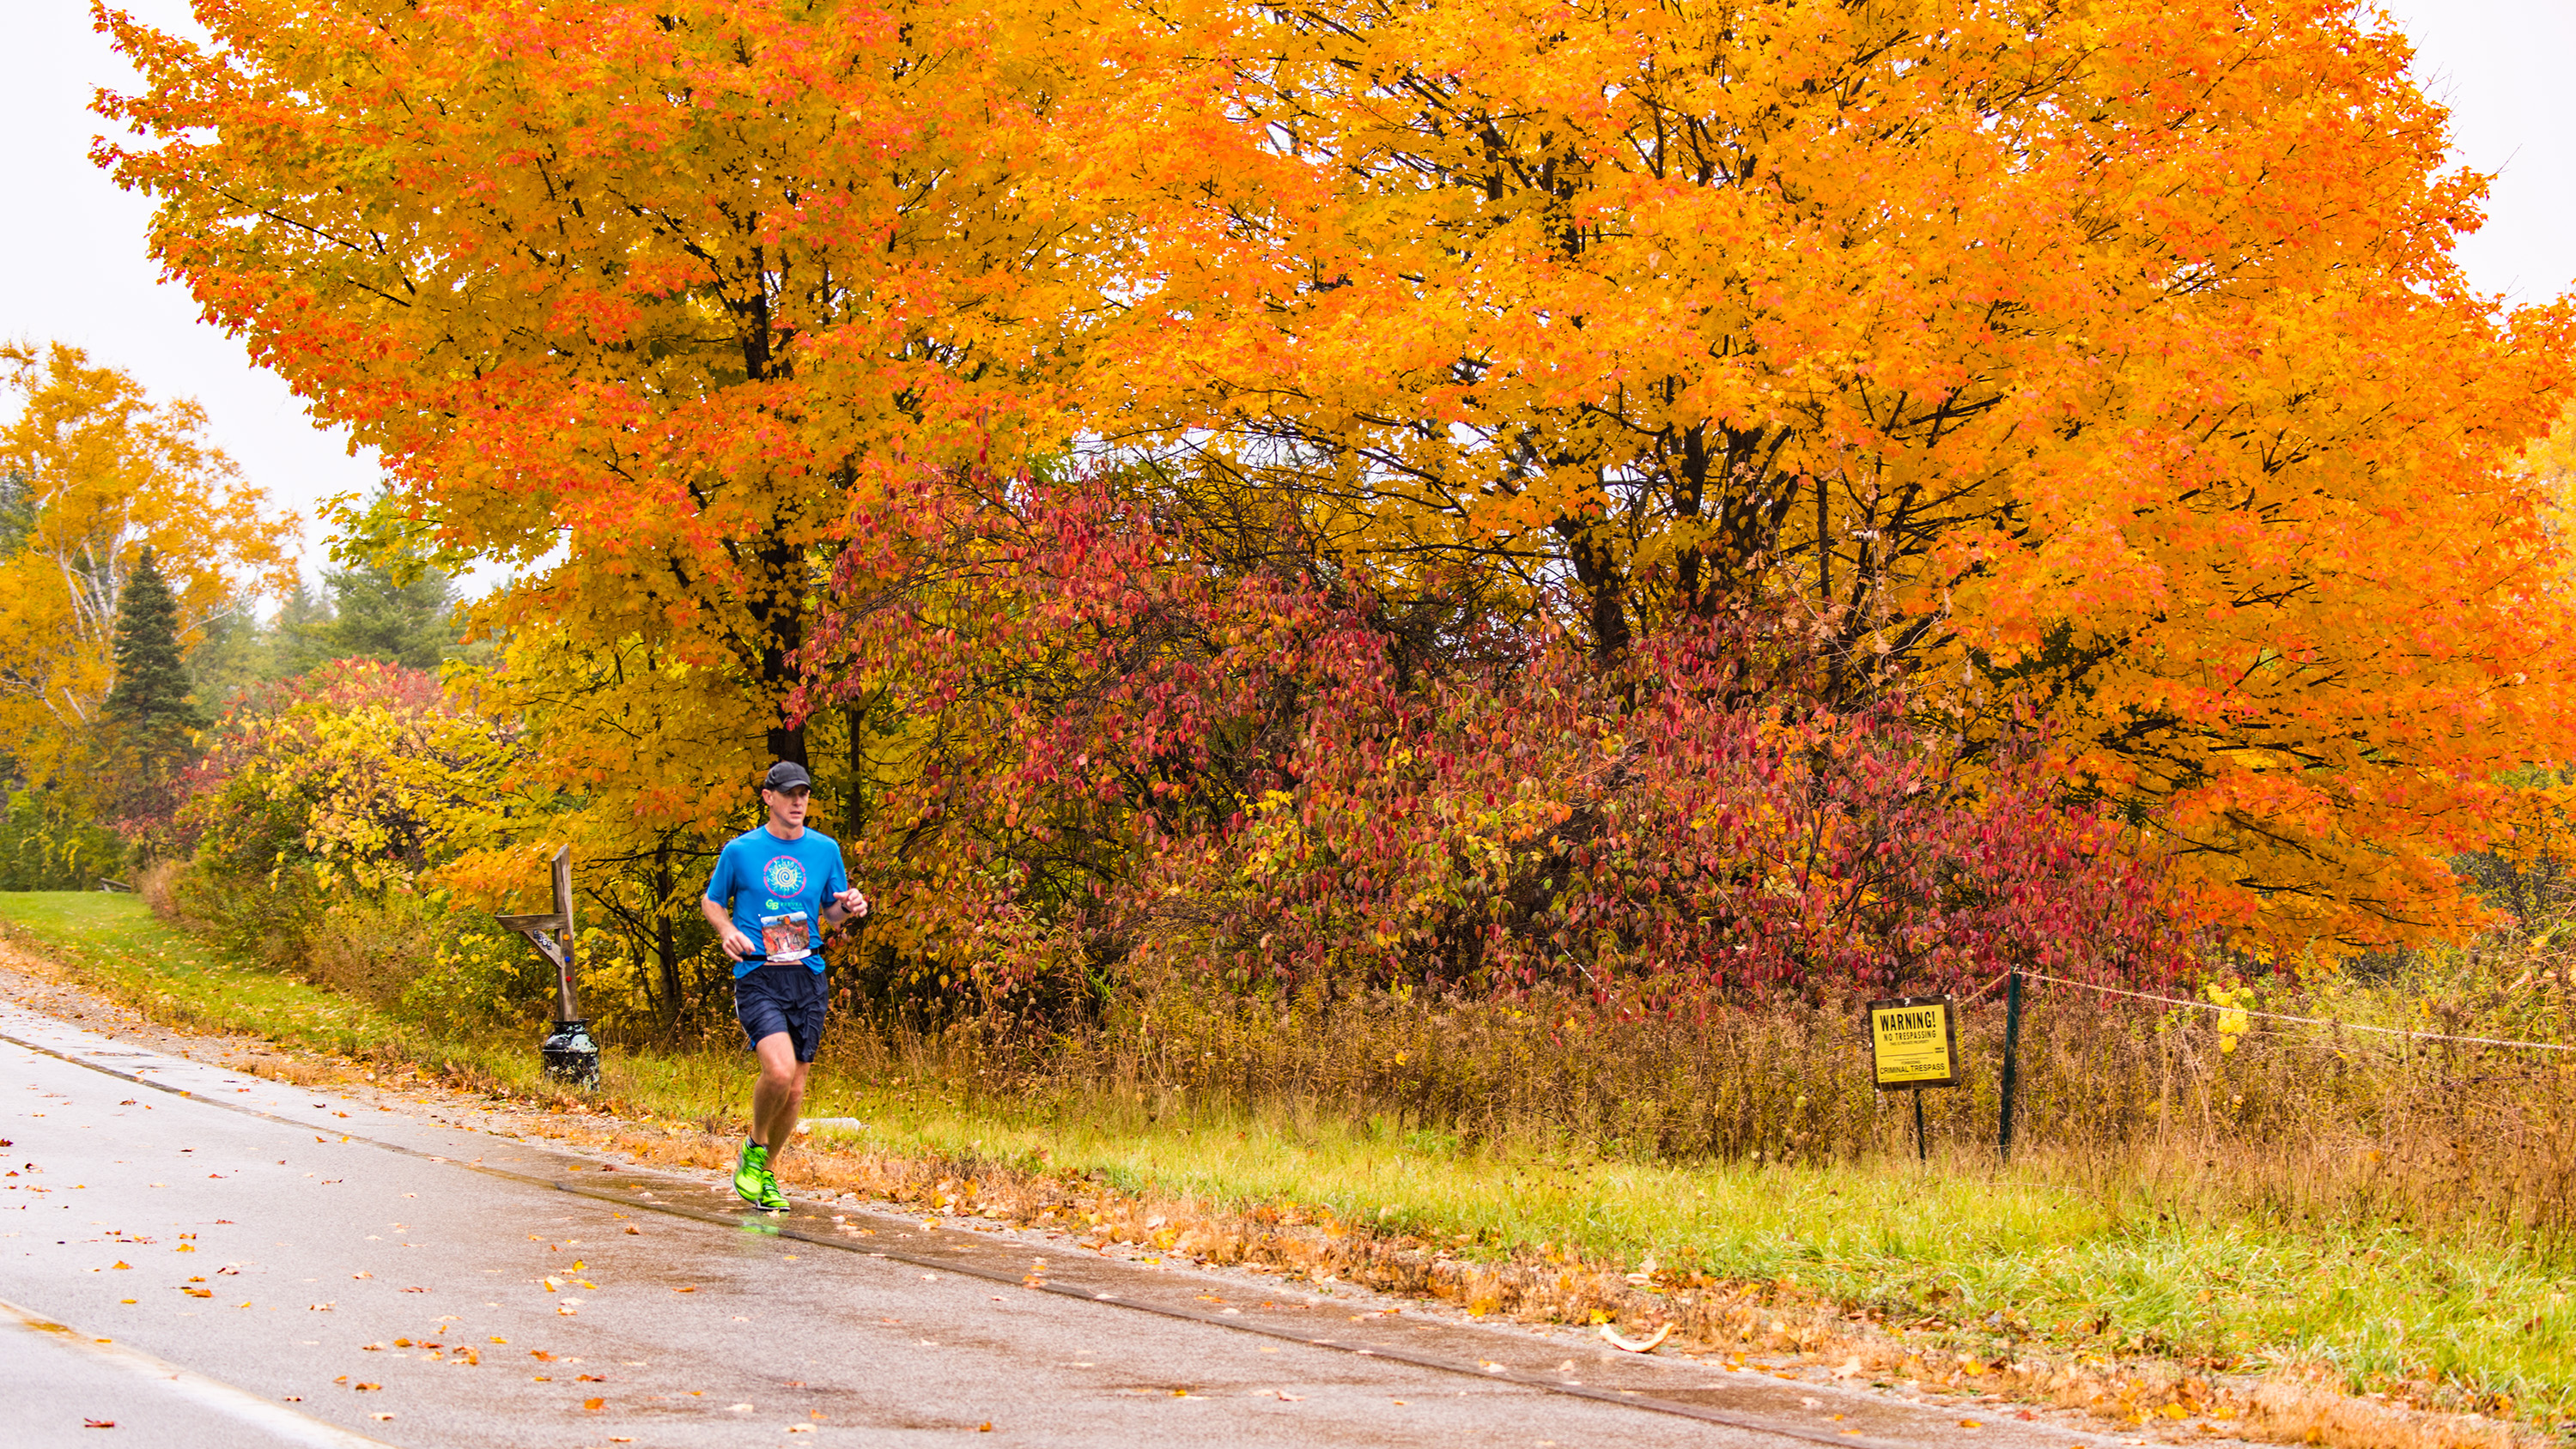 A point-to-point 50-mile run that offers a challenge to solo or run in teams of 2-5 which showcases the western shoreline of Door County during peak fall ... & Door County Events Calendar - Door County Pulse pezcame.com